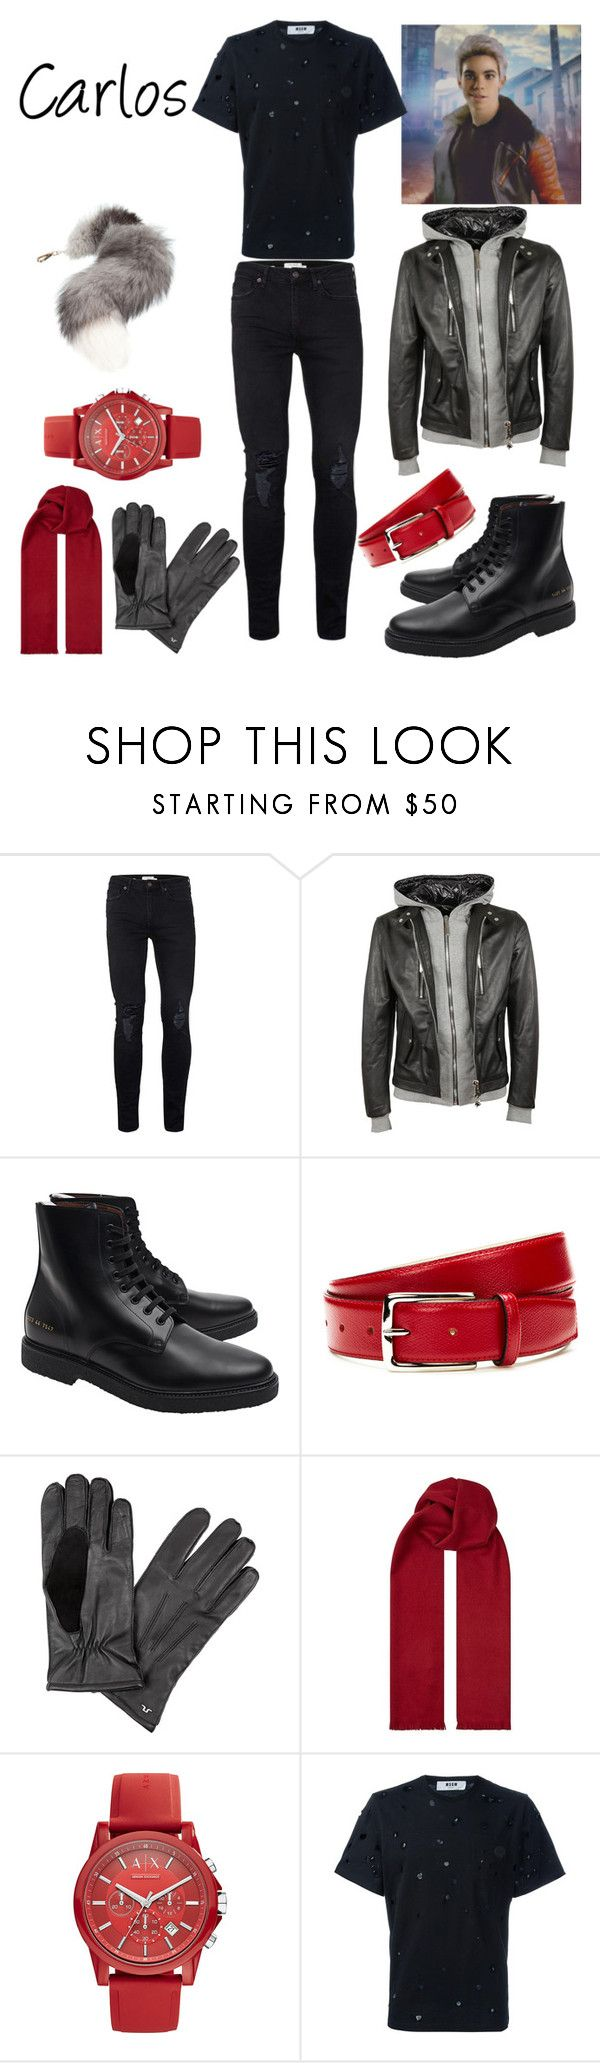 """""""Carlos' Winter Outfit"""" by keih95 ❤ liked on Polyvore featuring Topman, Philipp Plein, Common Projects, DeSanto, J.Lindeberg, BOSS Hugo Boss, Armani Exchange, MSGM, Niclaire and men's fashion"""